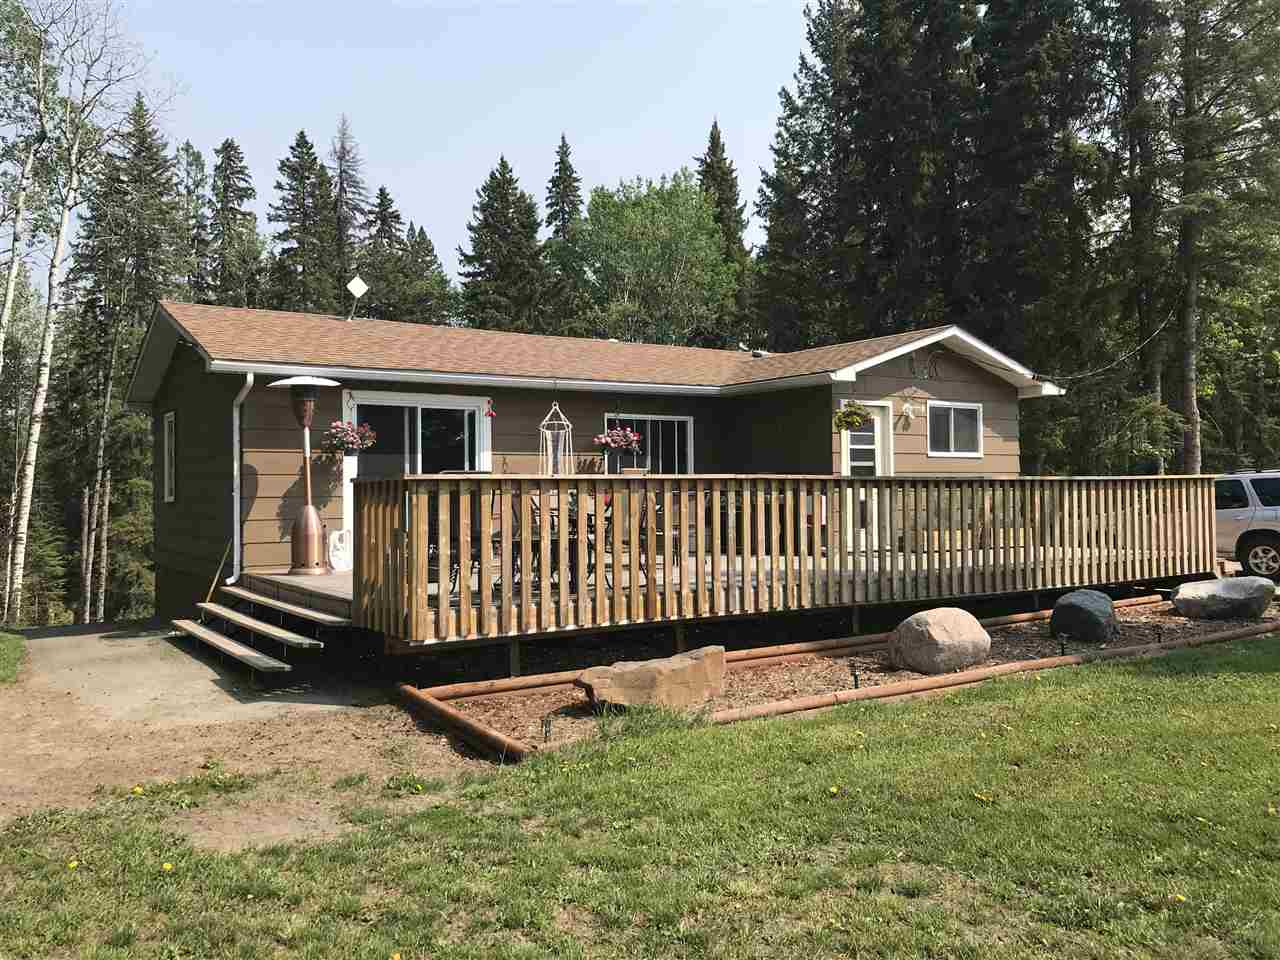 48205 Rr 72, Rural Brazeau County, MLS® # E4151206